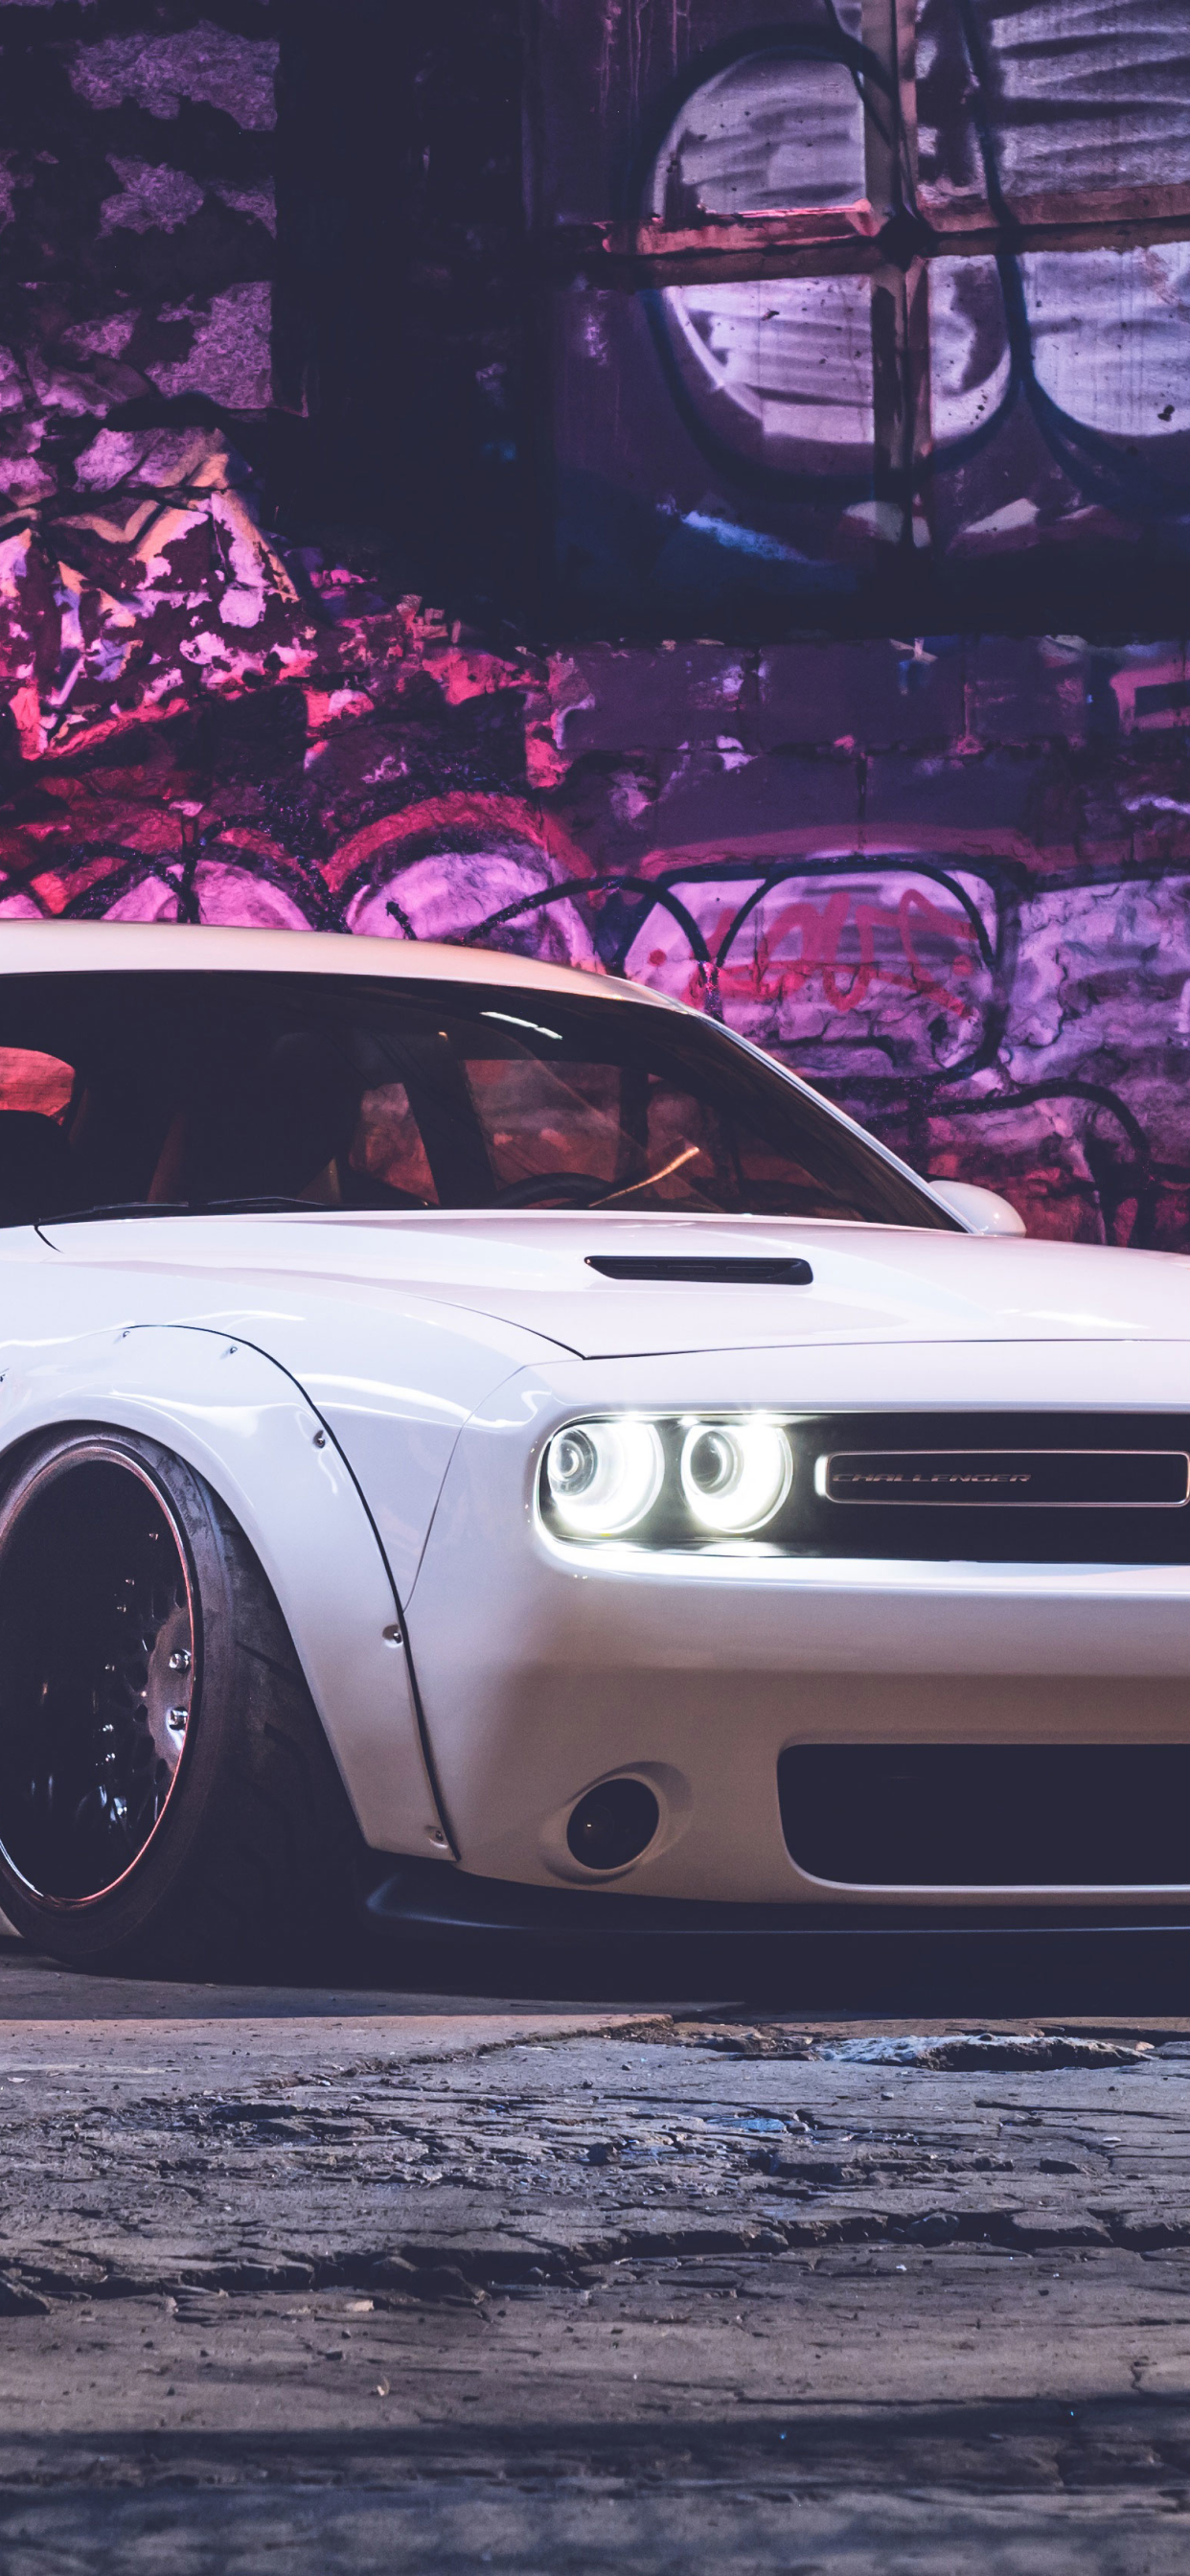 1242x2688 Dodge Challenger Iphone Xs Max Wallpaper Hd Cars 4k Wallpapers Images Photos And Background